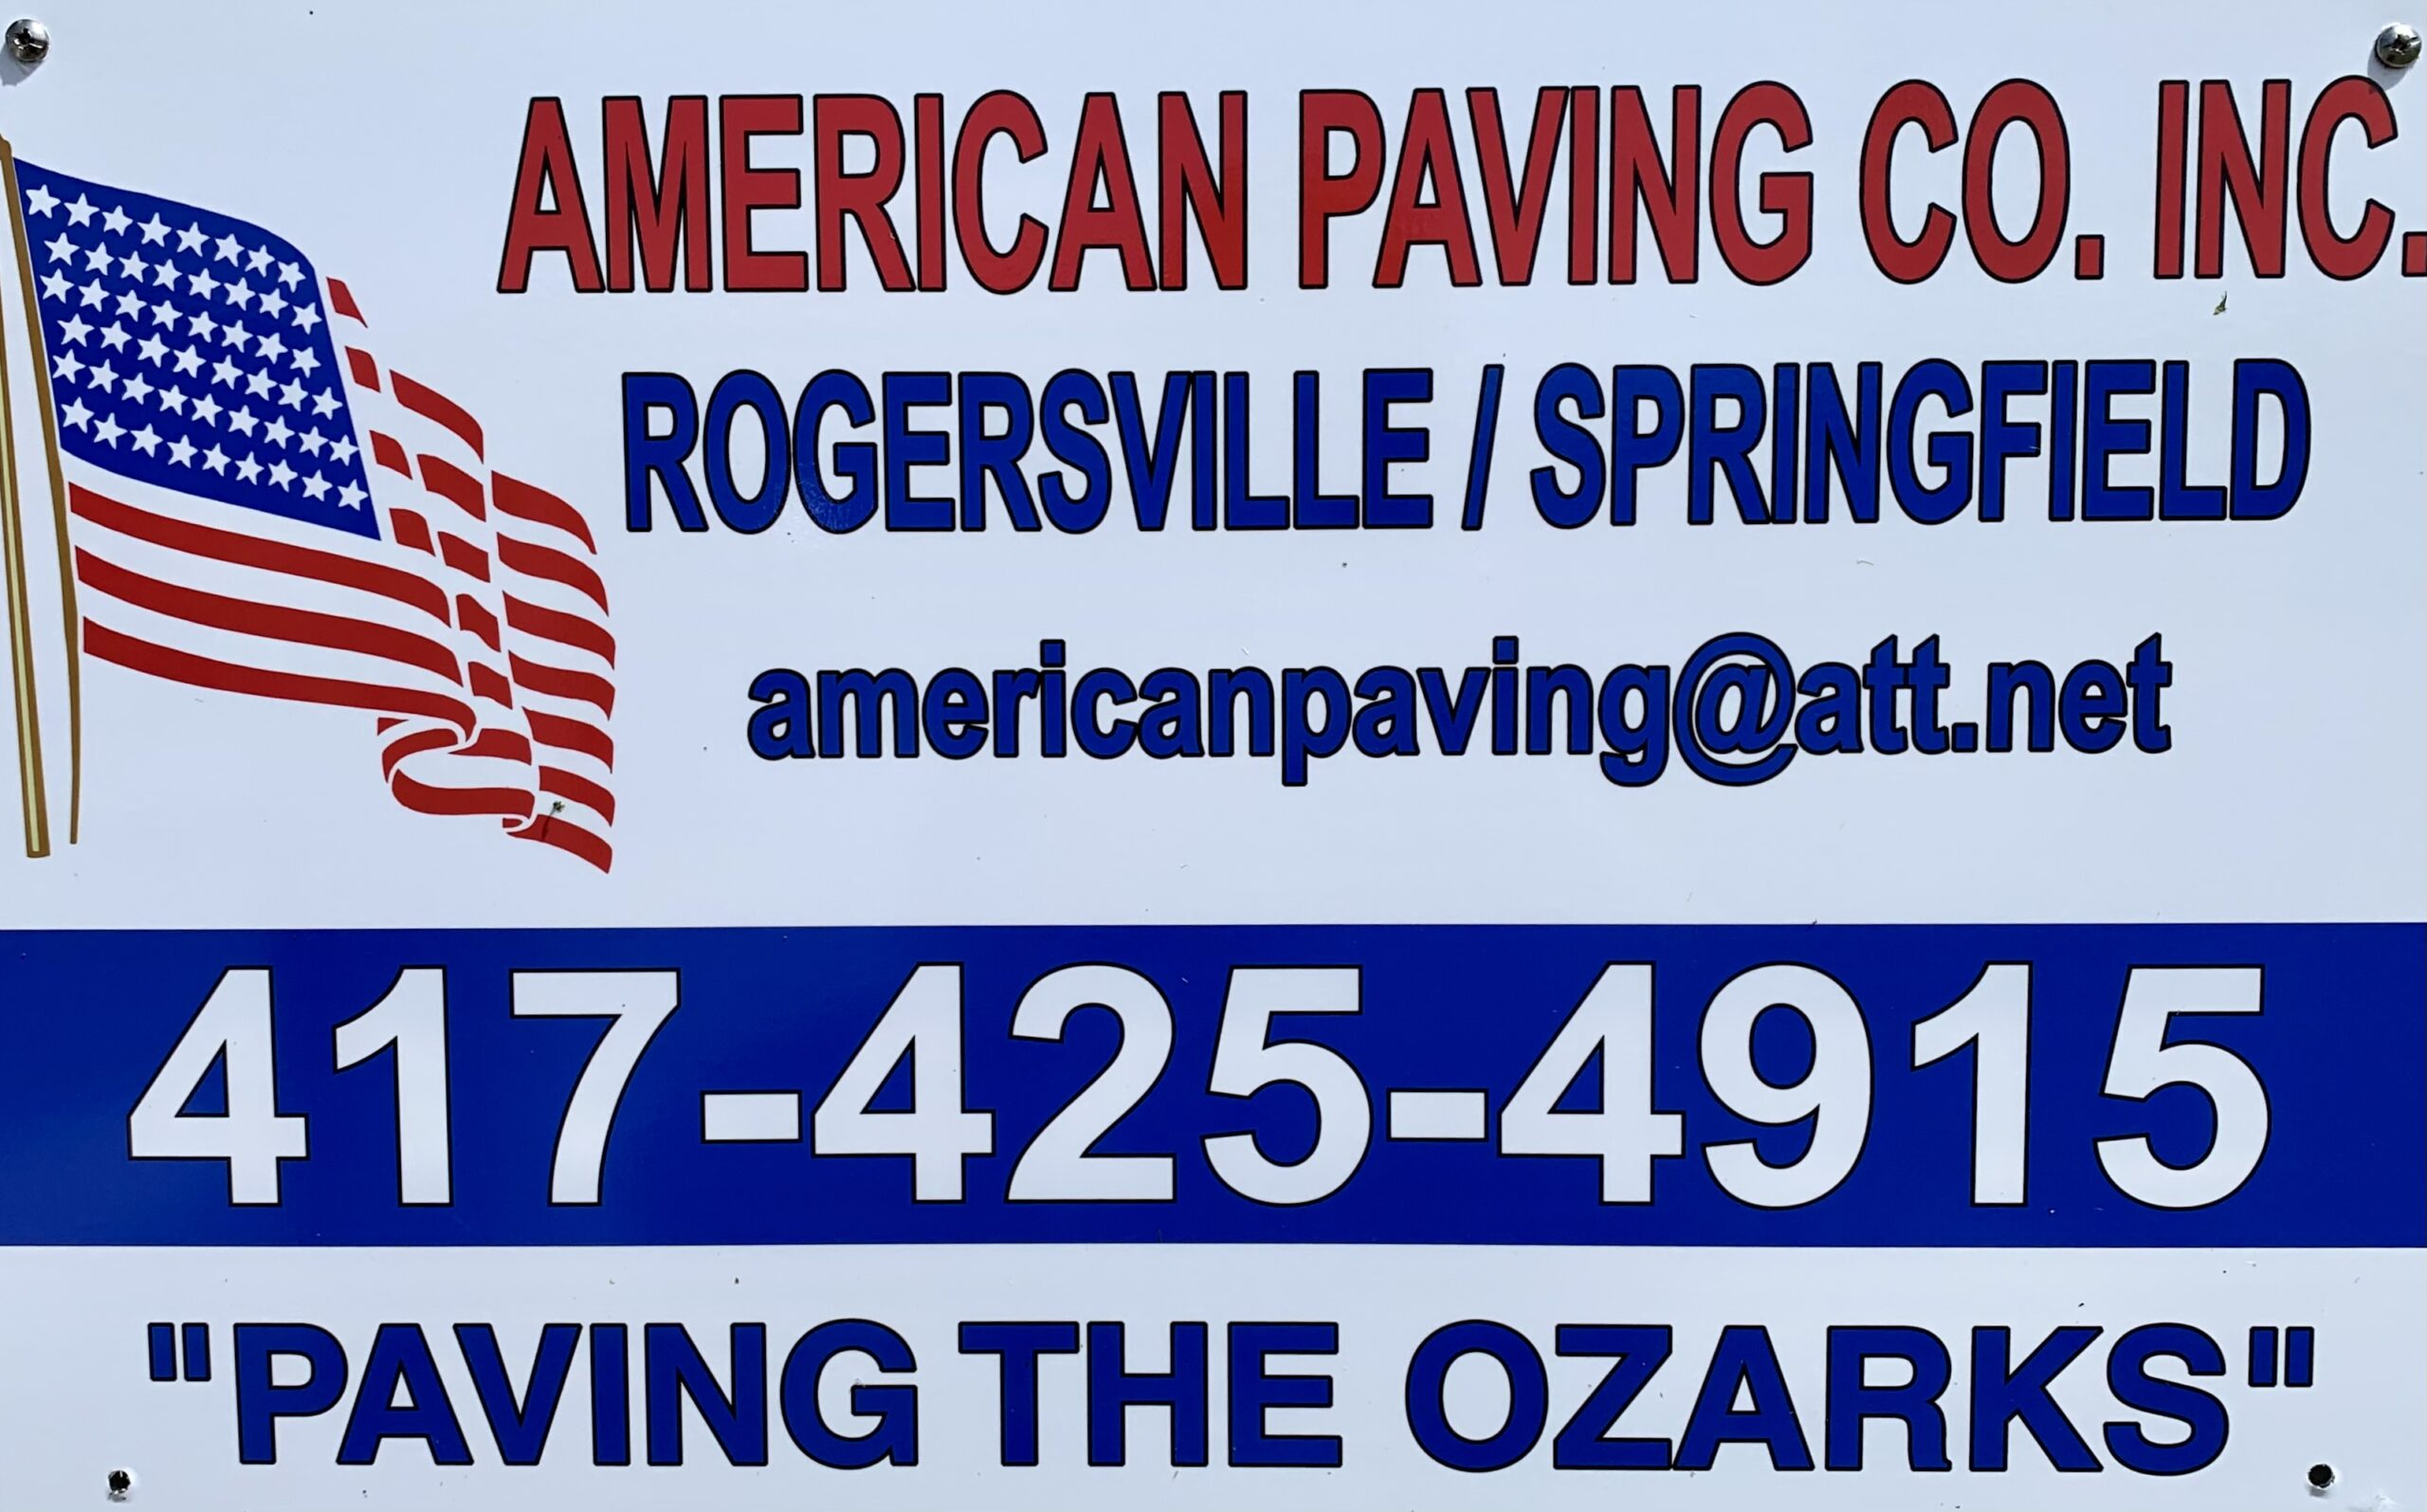 American Paving Co., Inc.